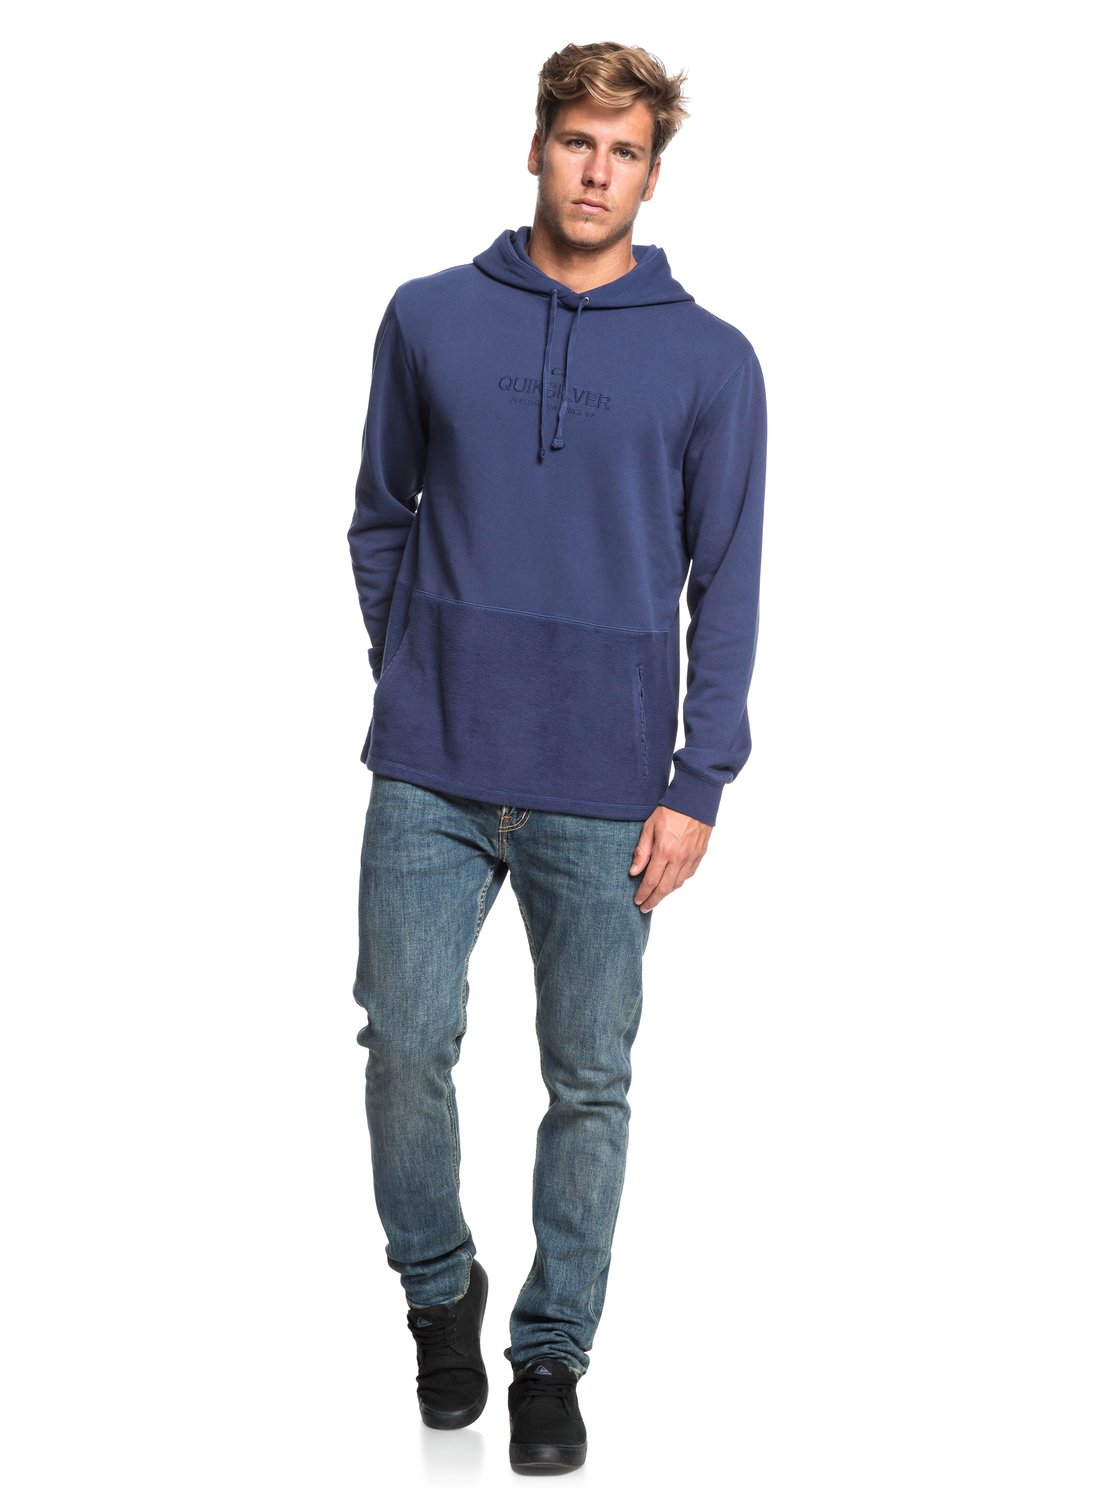 Quiksilver-Voodoo-Red-Zone-Sweat-a-capuche-pour-Homme-EQYFT03932 miniature 8